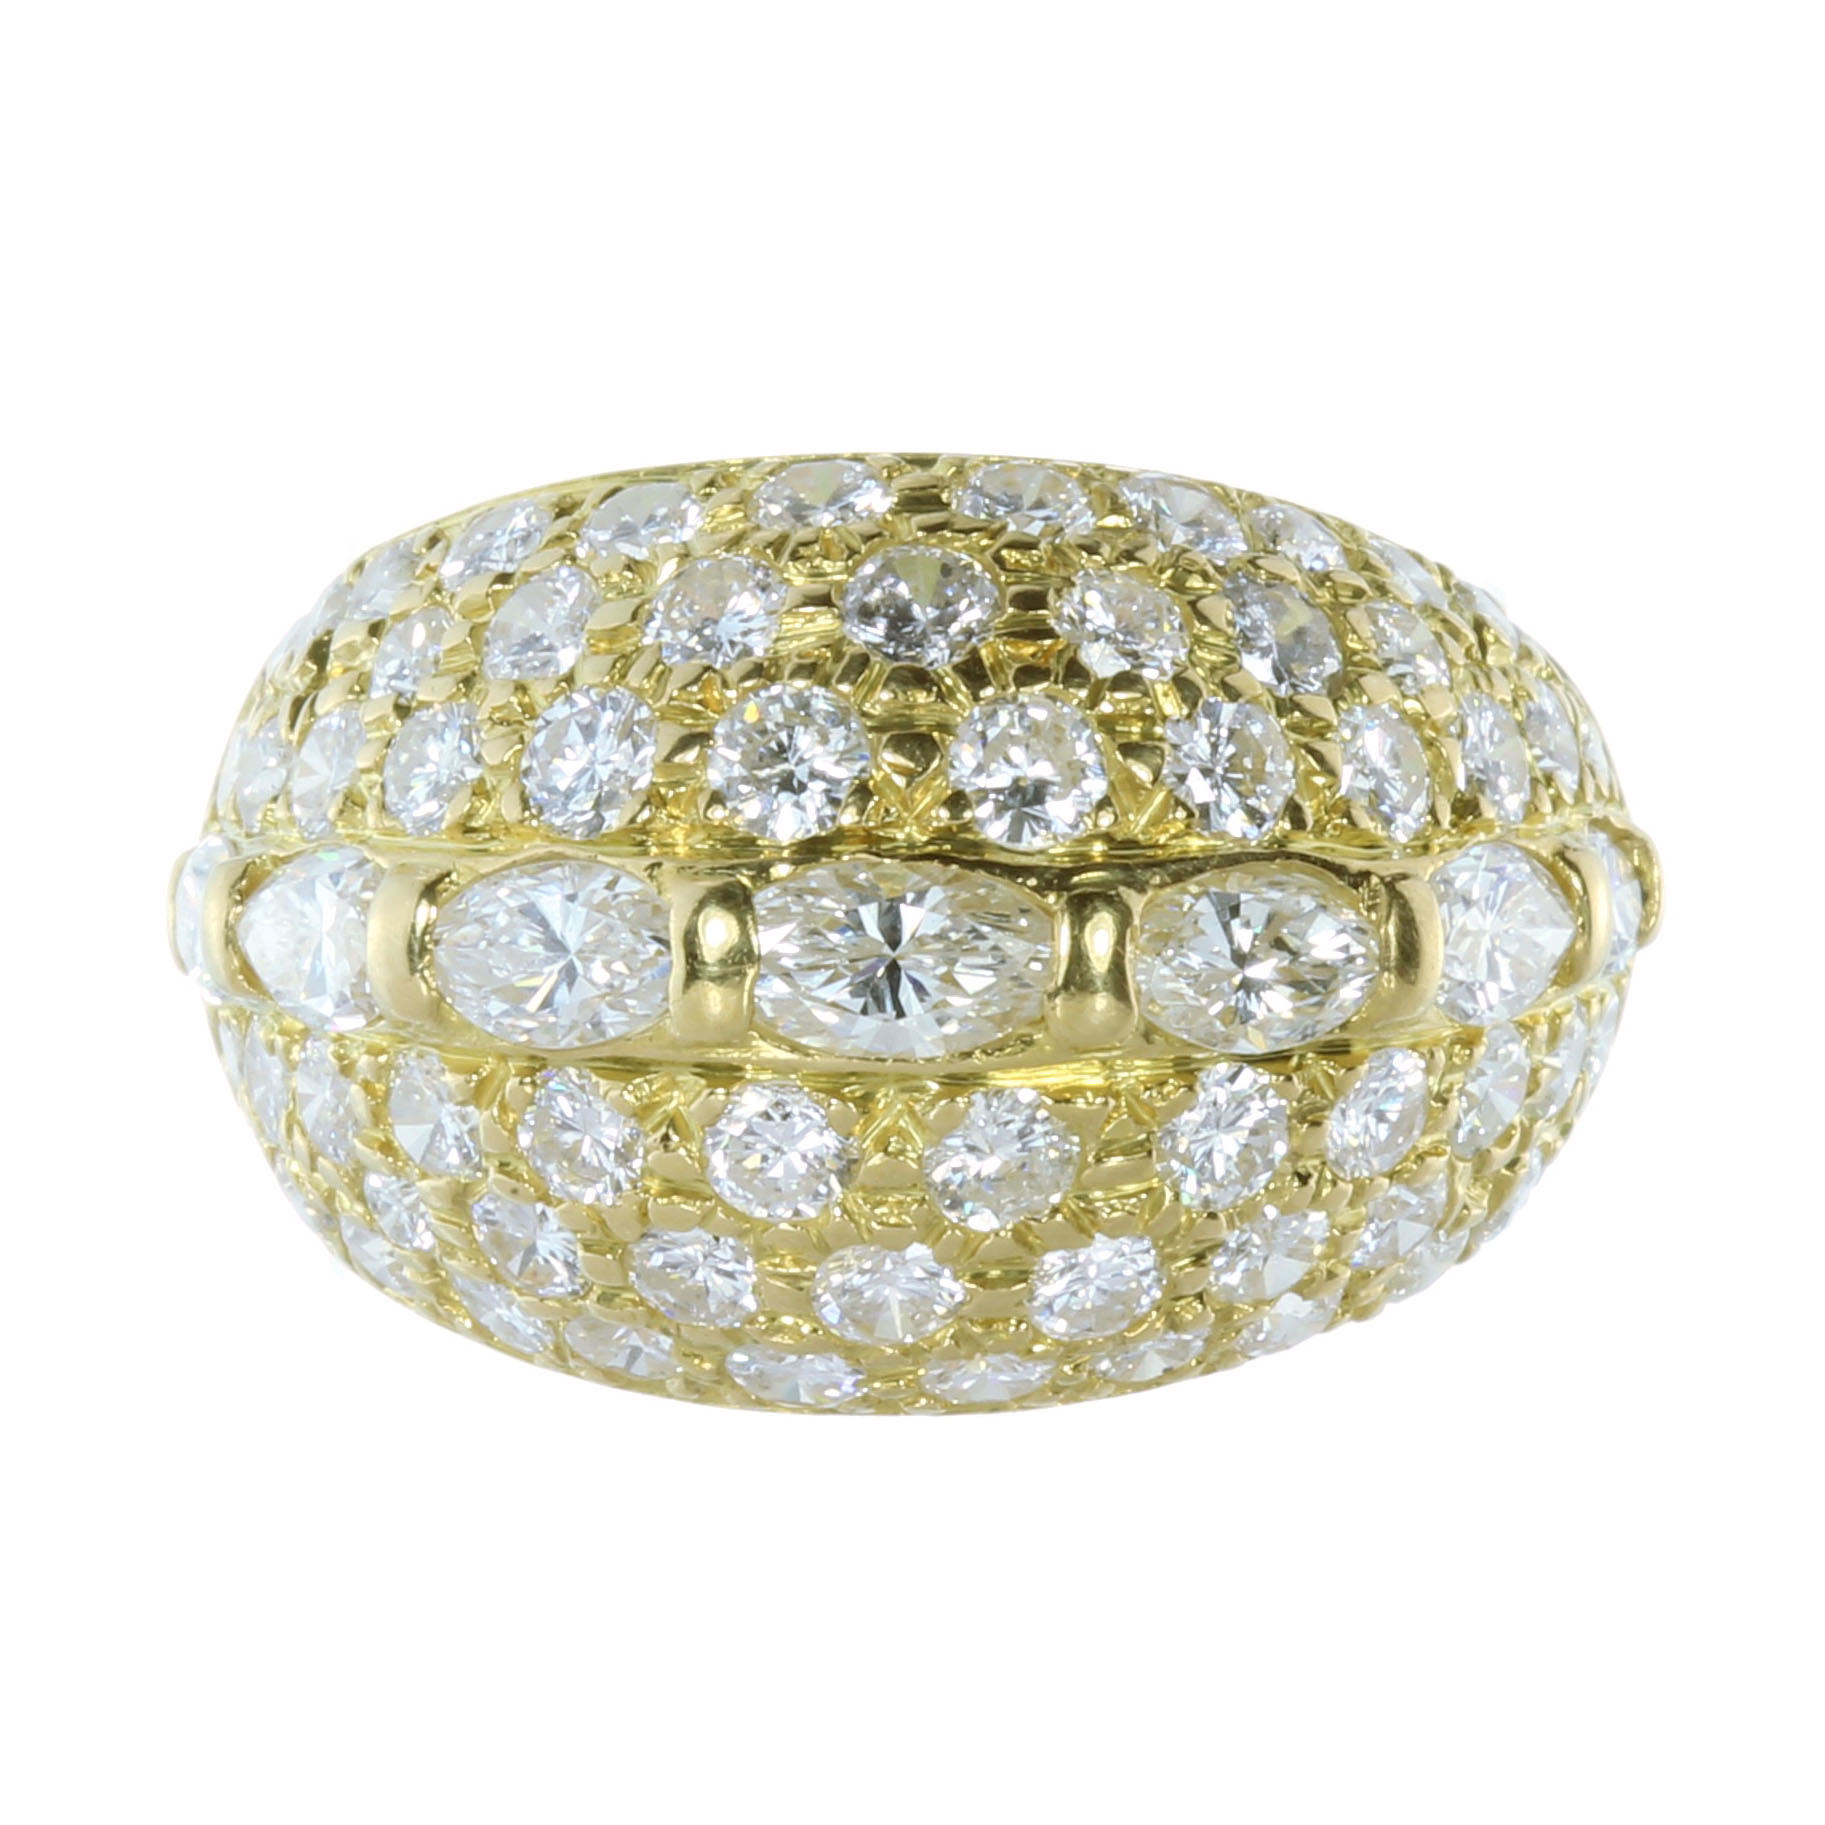 Los 59 - A DIAMOND BOMBE DRESS RING in high carat yellow gold, set with a central row of seven oval cut